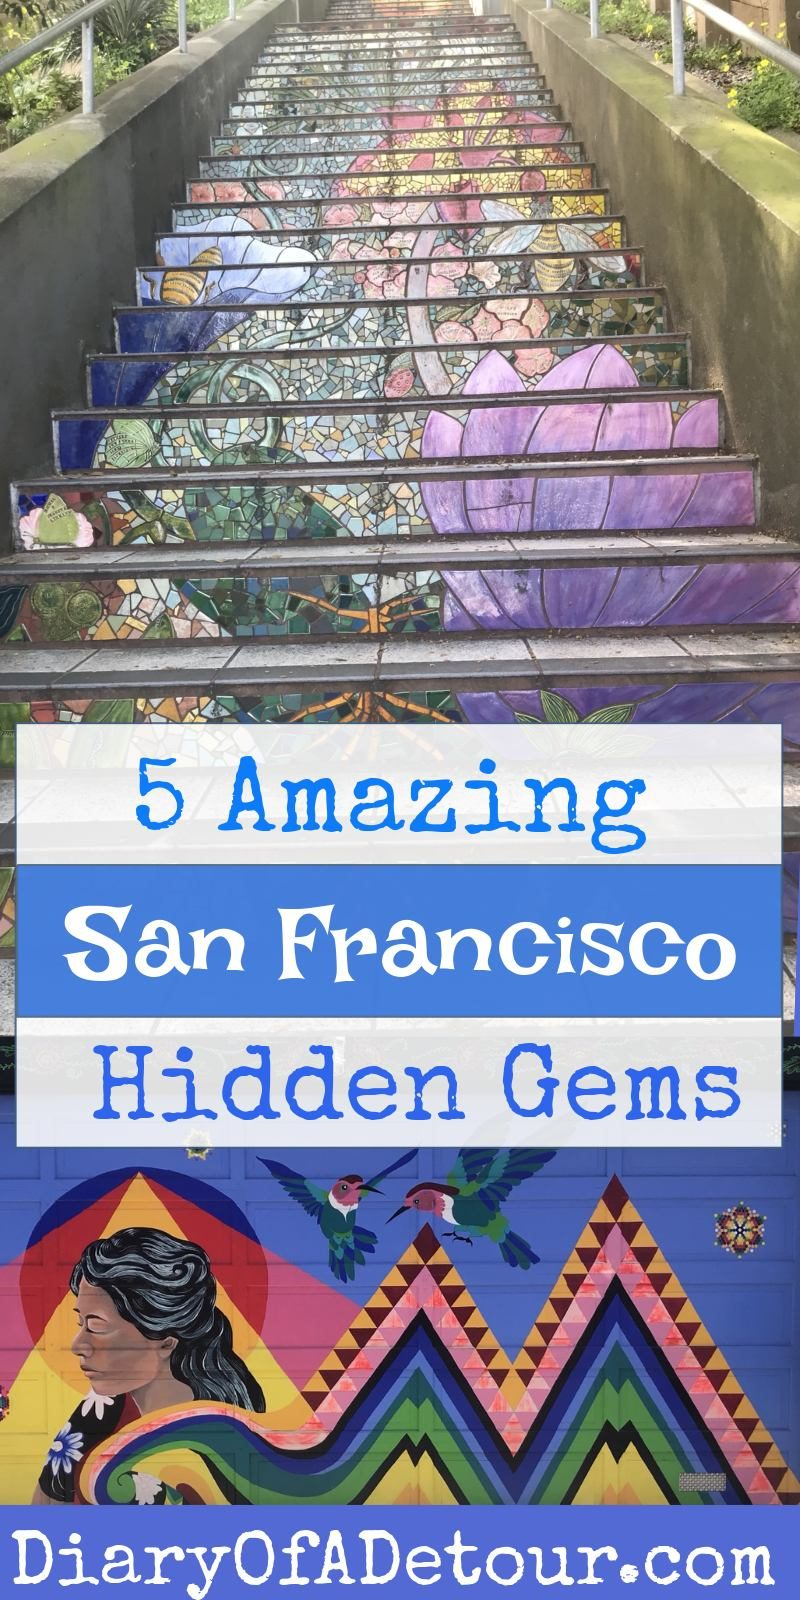 Hidden gems in San Francisco